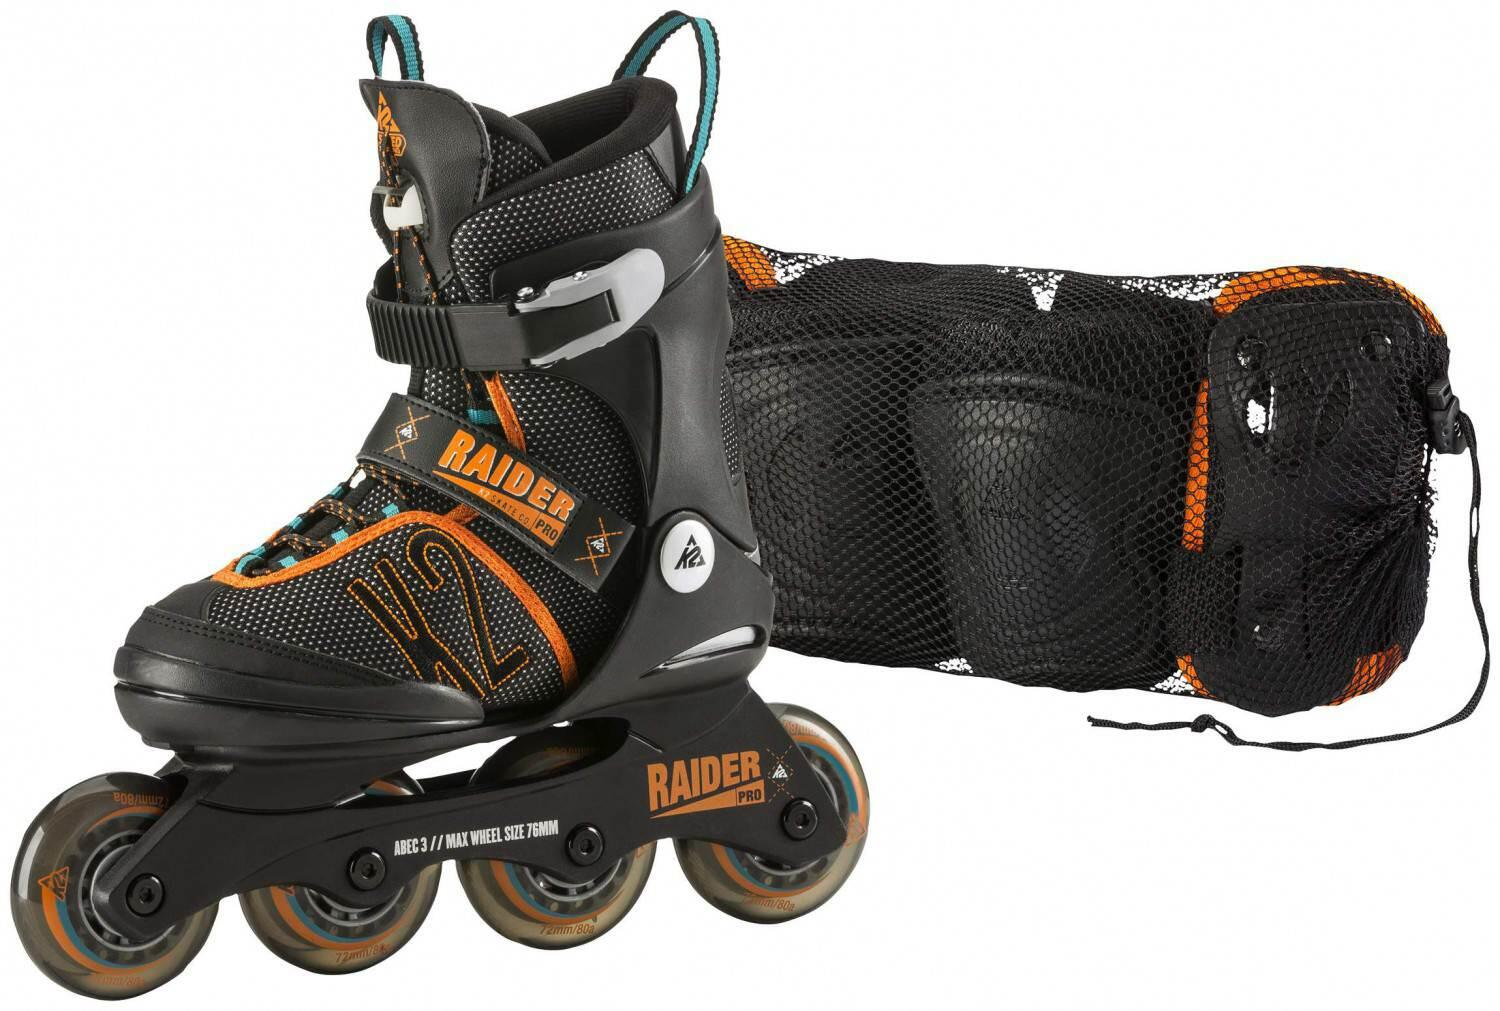 Inliner - K2 Raider Pro Pack Junior Inlineskate Set (Größe 32.0 37.0 (M), 1 design) - Onlineshop